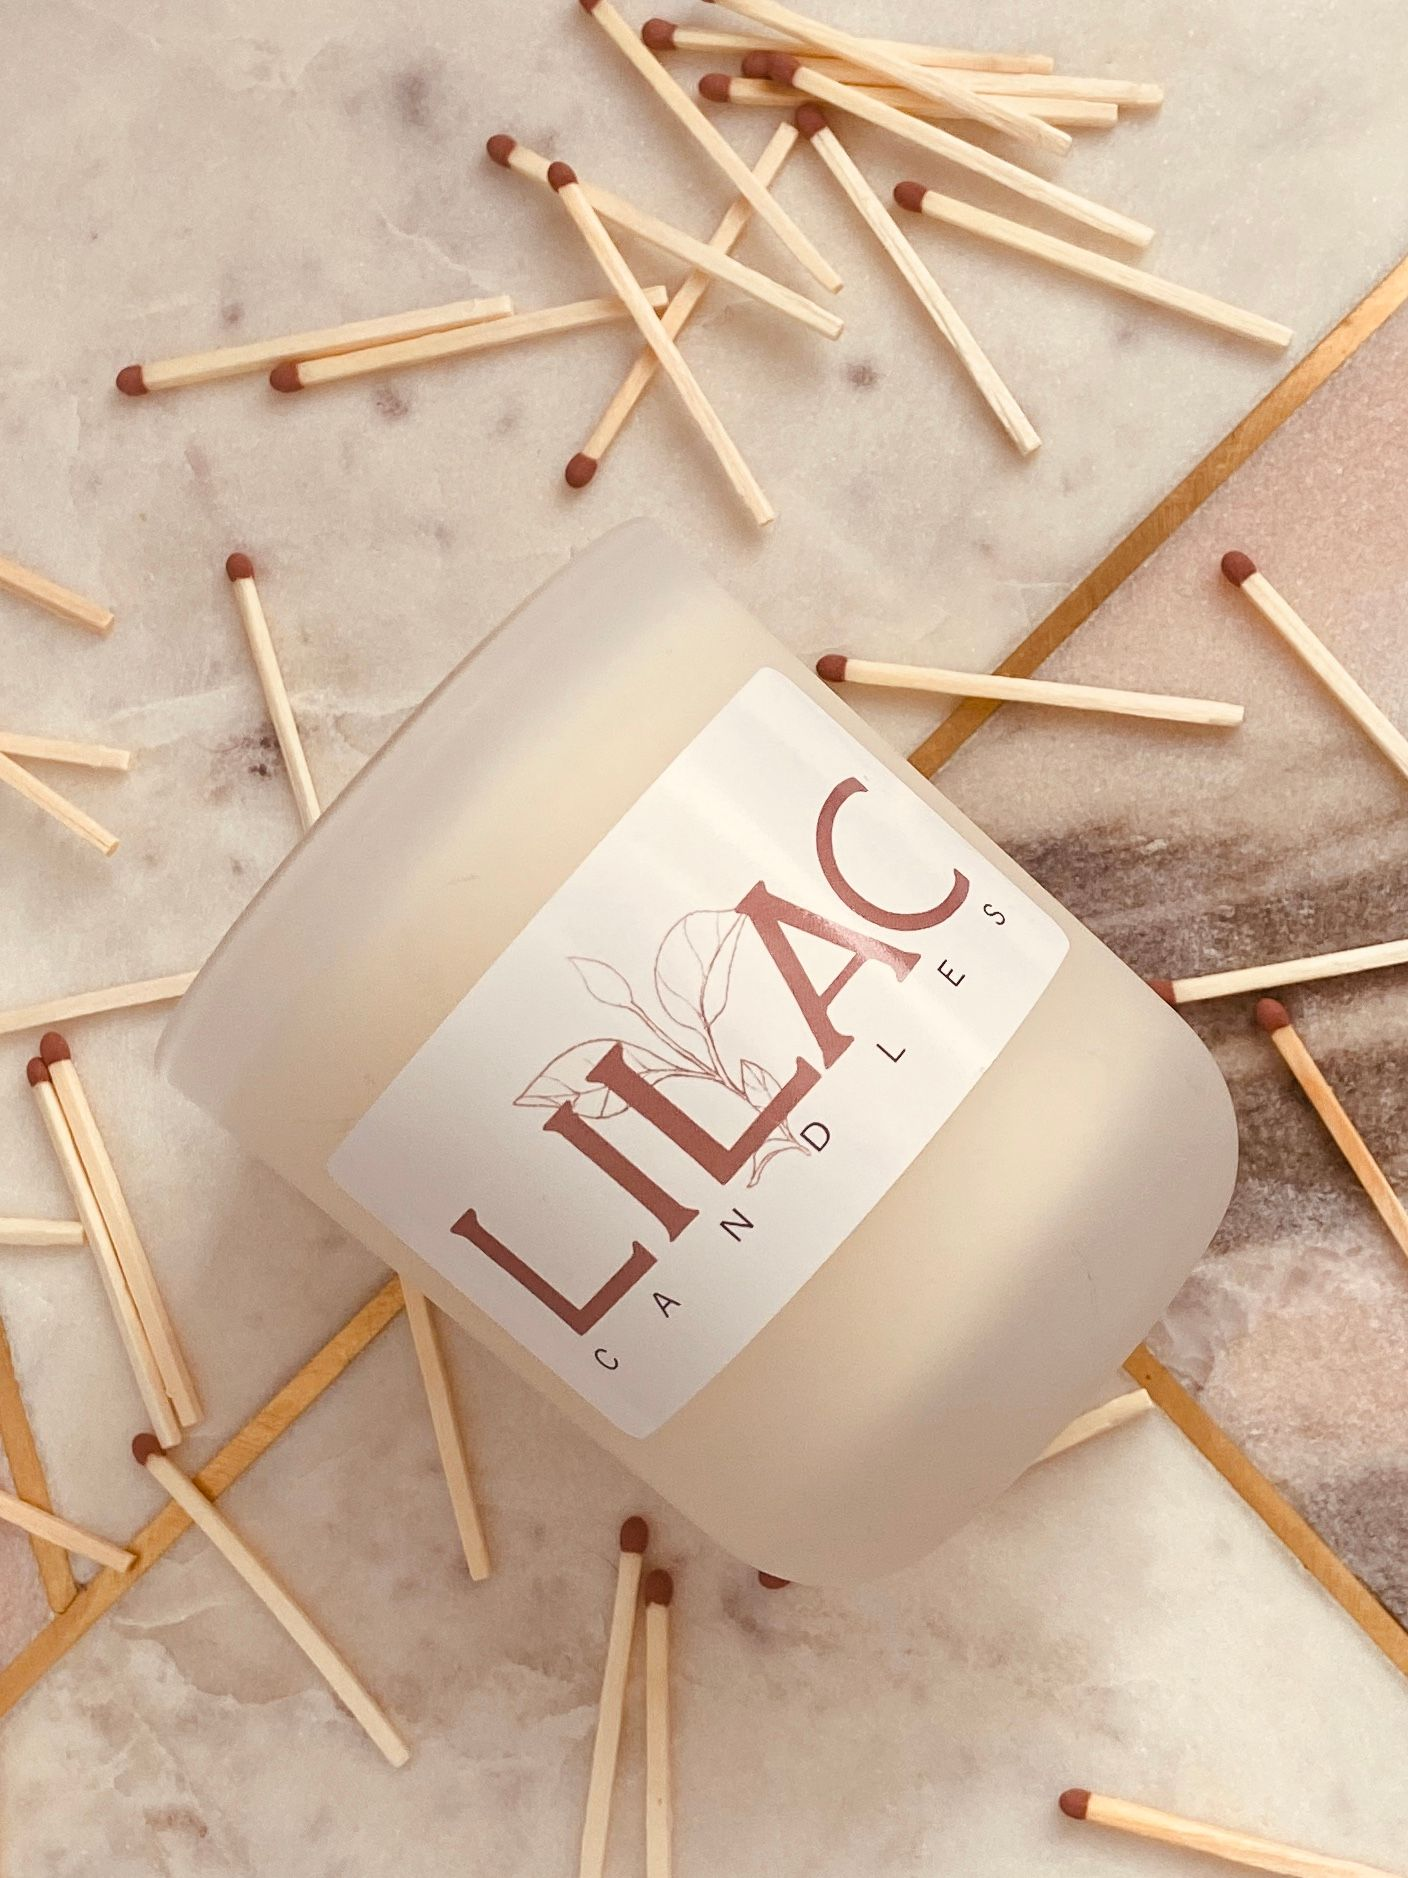 Lilac Candles: Cruelty-Free, Eco-Friendly